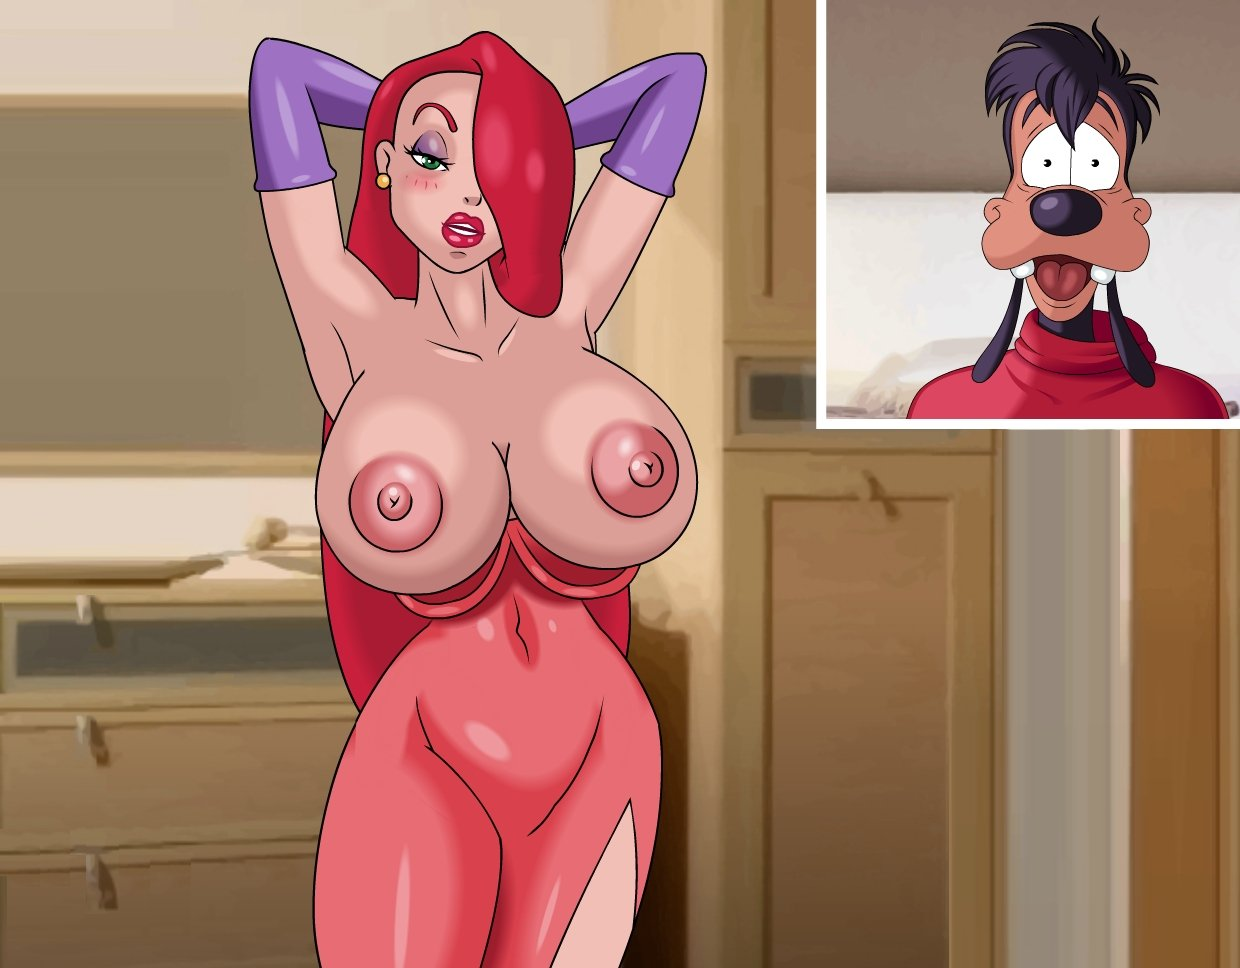 Jessica rabbit sex games